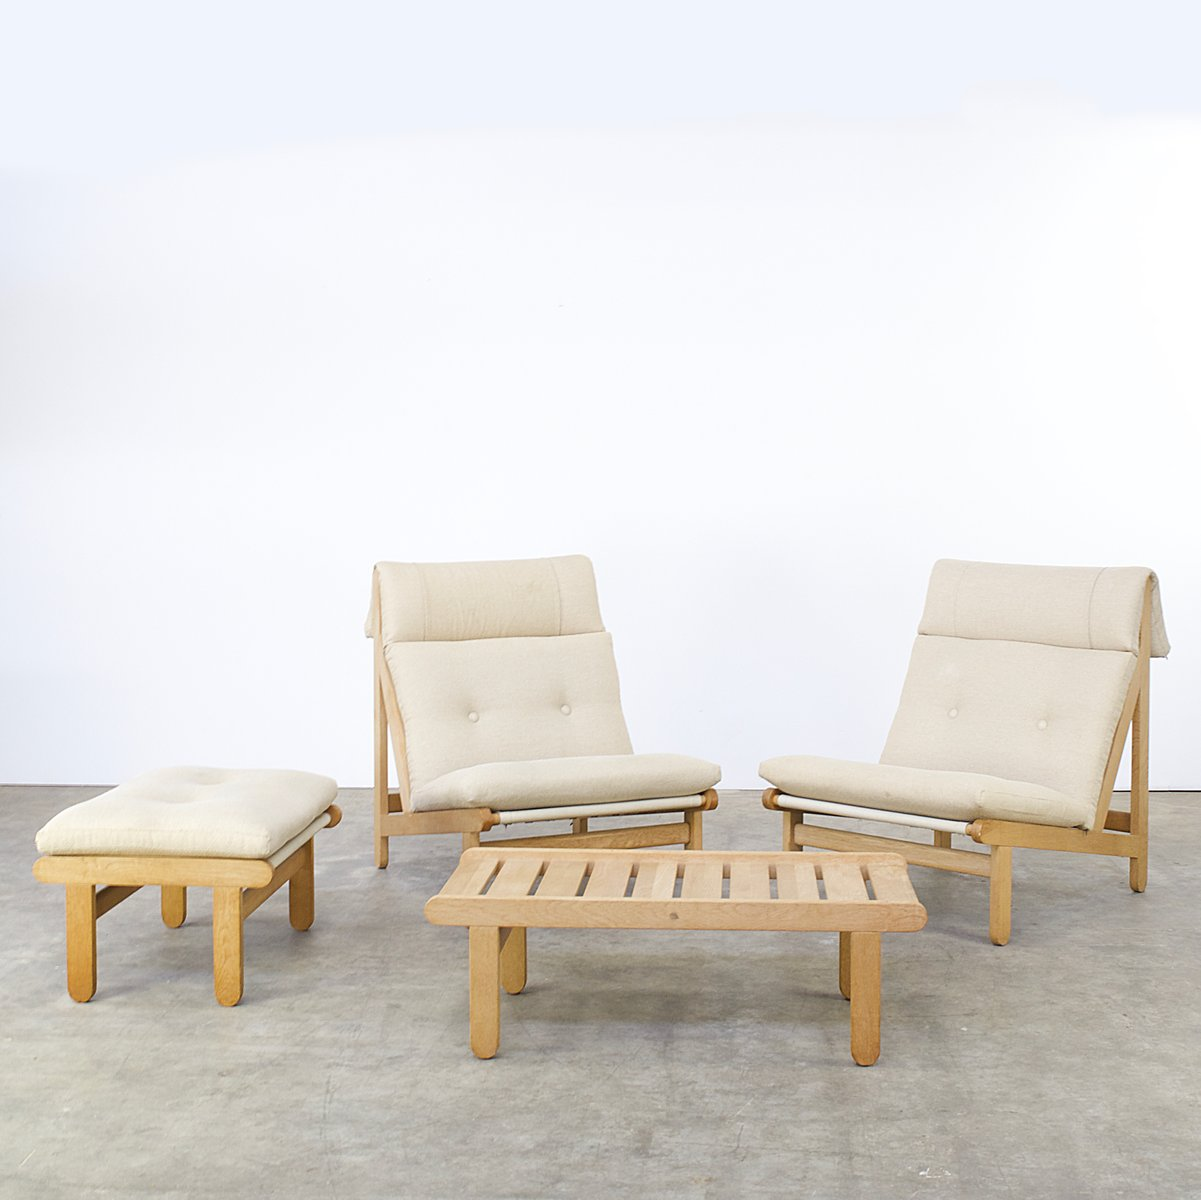 A Frame Easy Chairs, Ottoman U0026 Coffee Table By Bernt Petersen For Schiang,  1960s